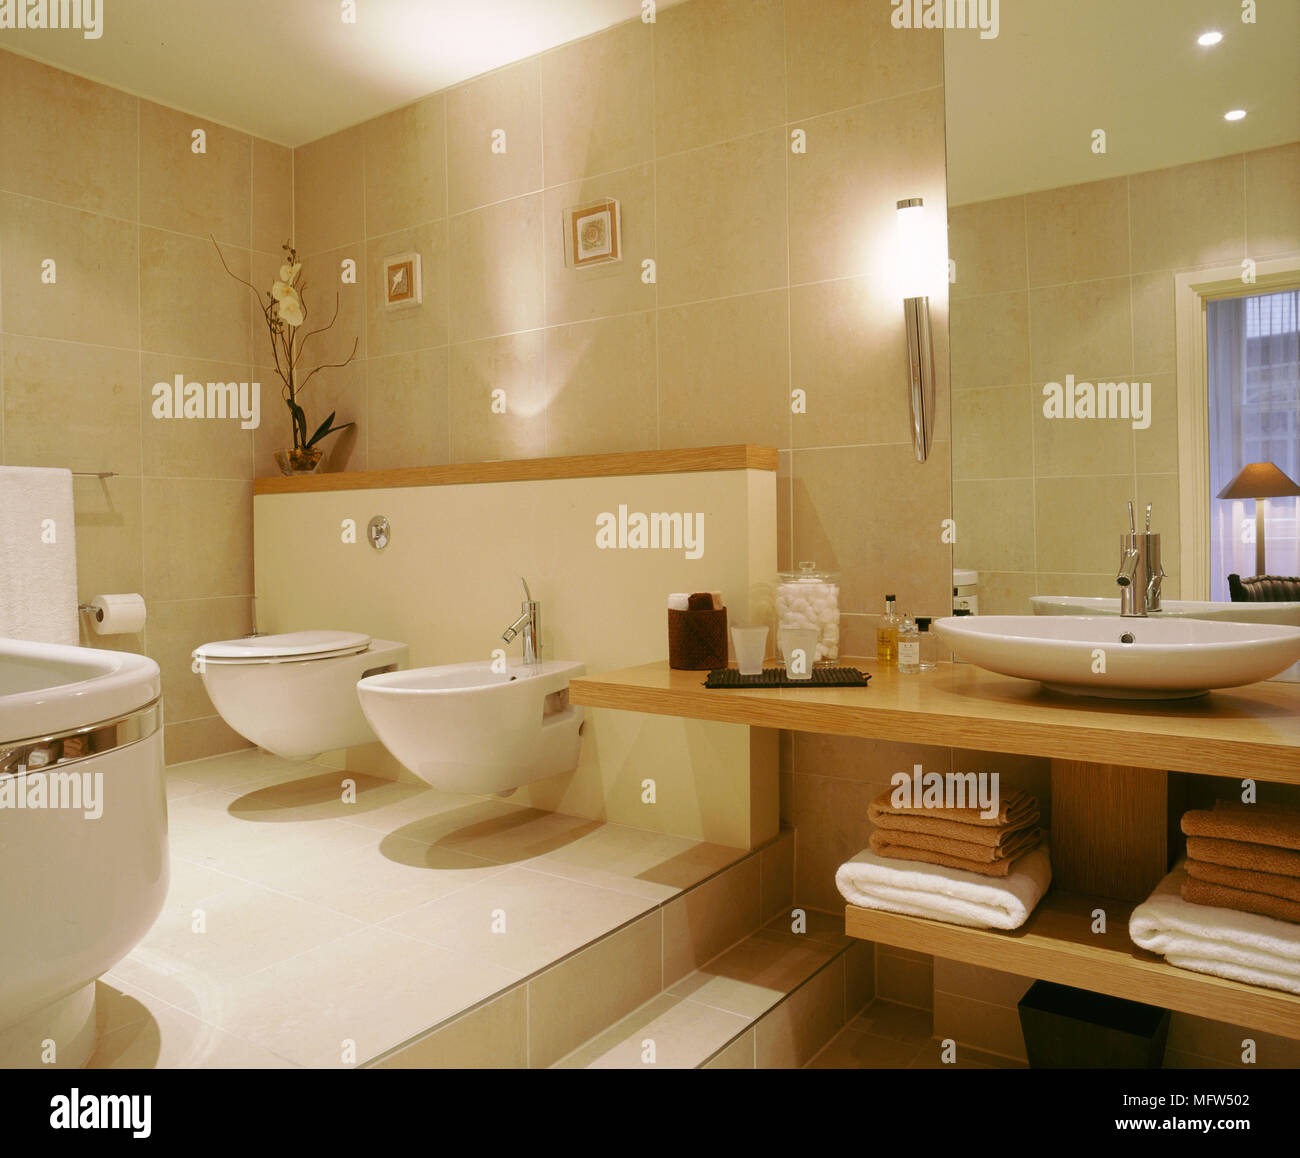 Modern Neutral Bathroom Toilet Bidet Washbasin On Wood Unit Concealed  Lighting